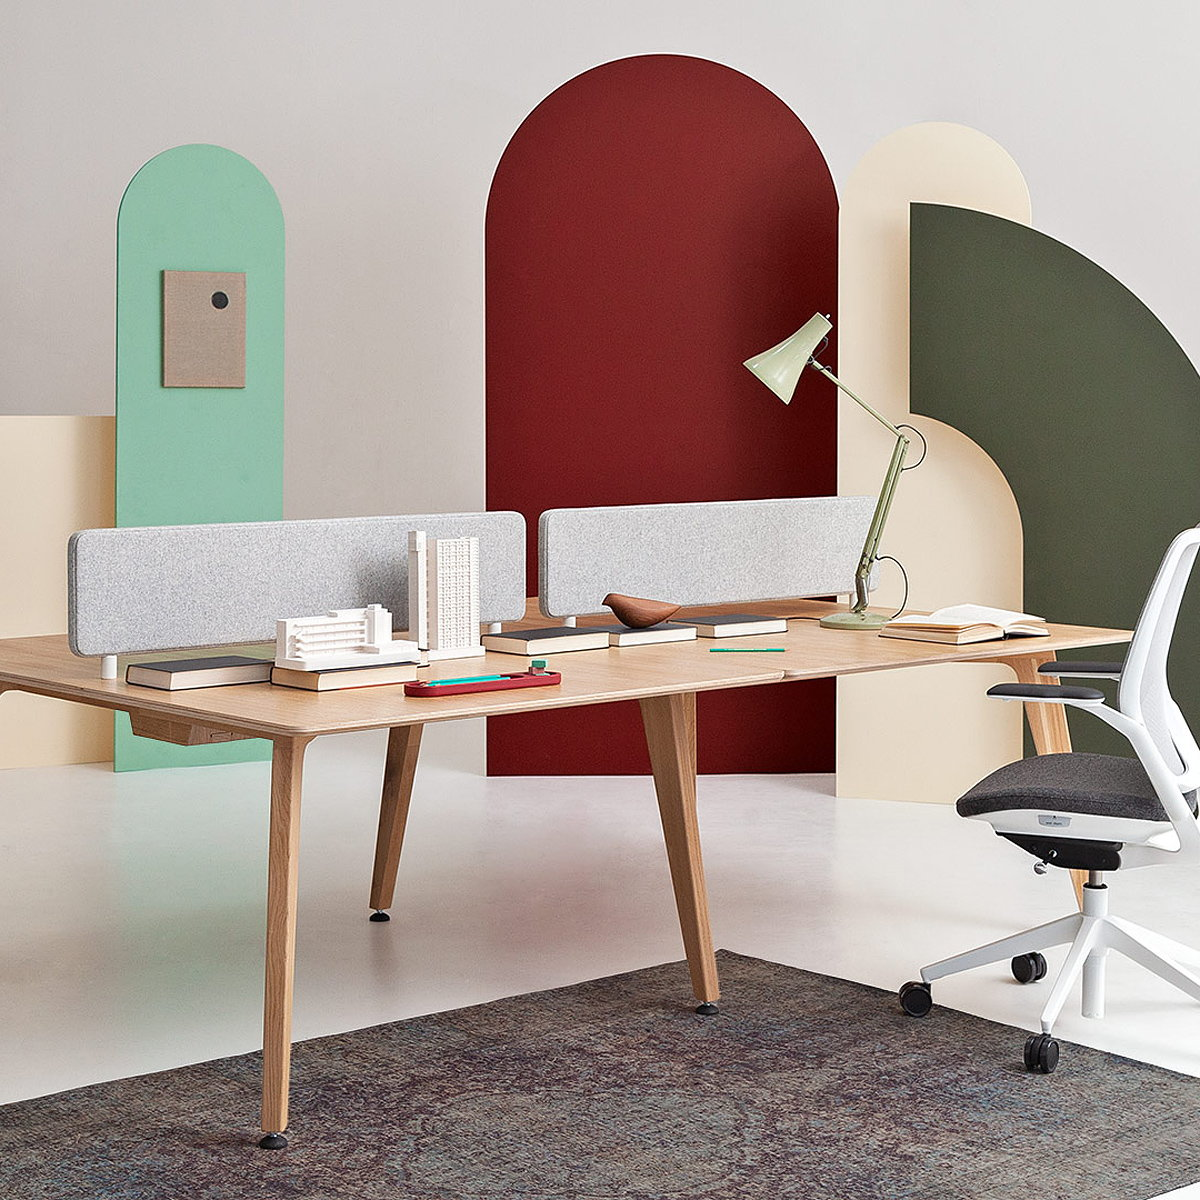 Liqui Contracts to Launch New Bench-Desk System at 100 Percent Design